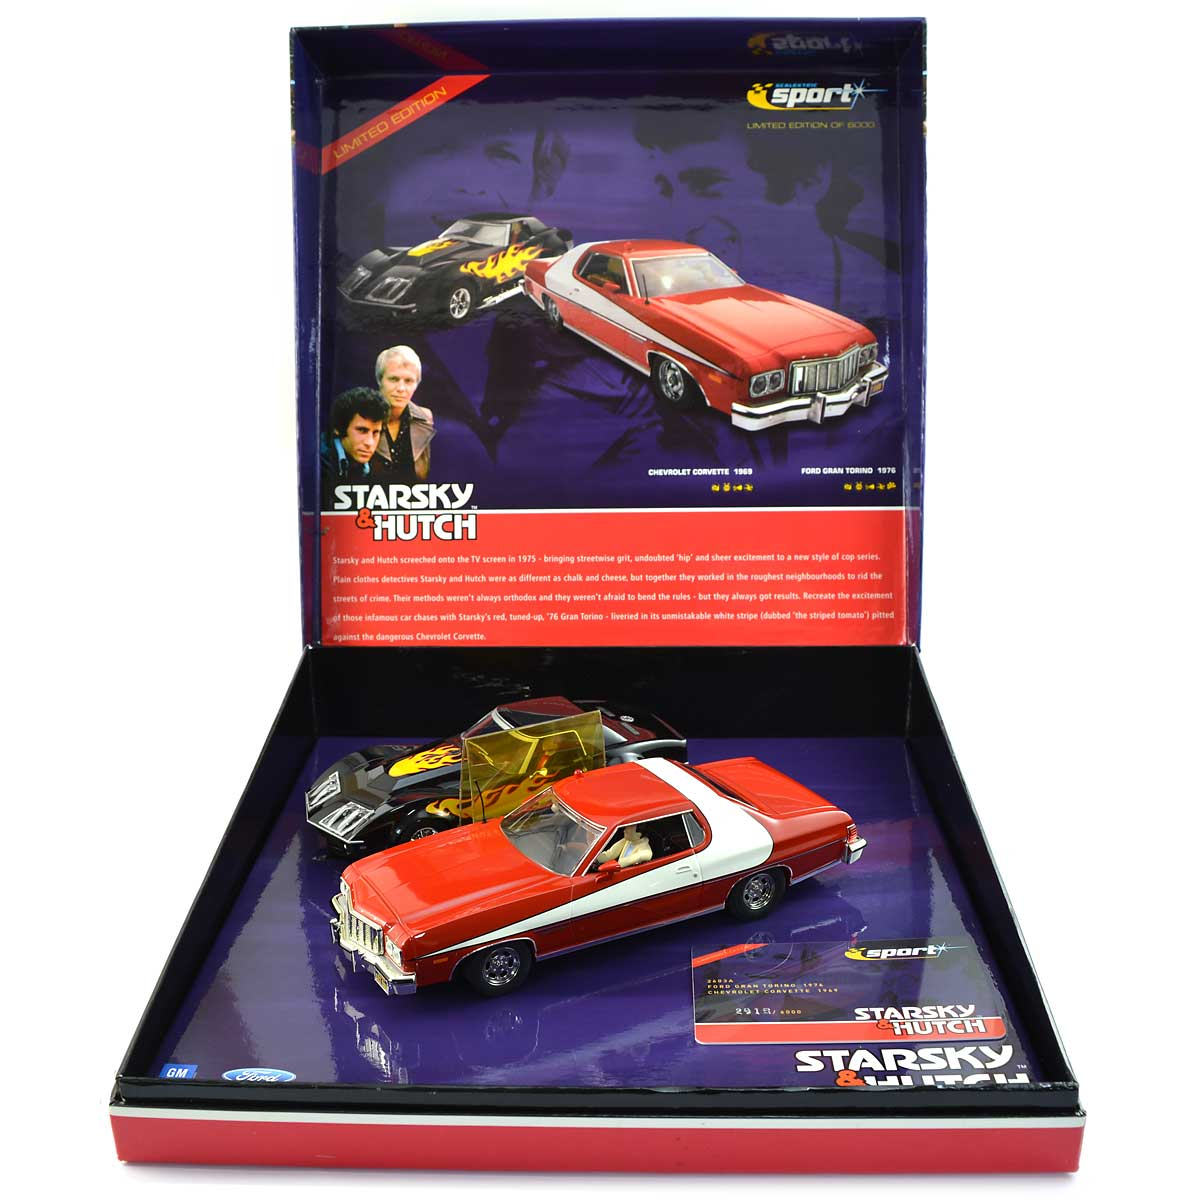 Starsky And Hutch Car: Scalextric Starsky & Hutch Limited Edition (C2603A